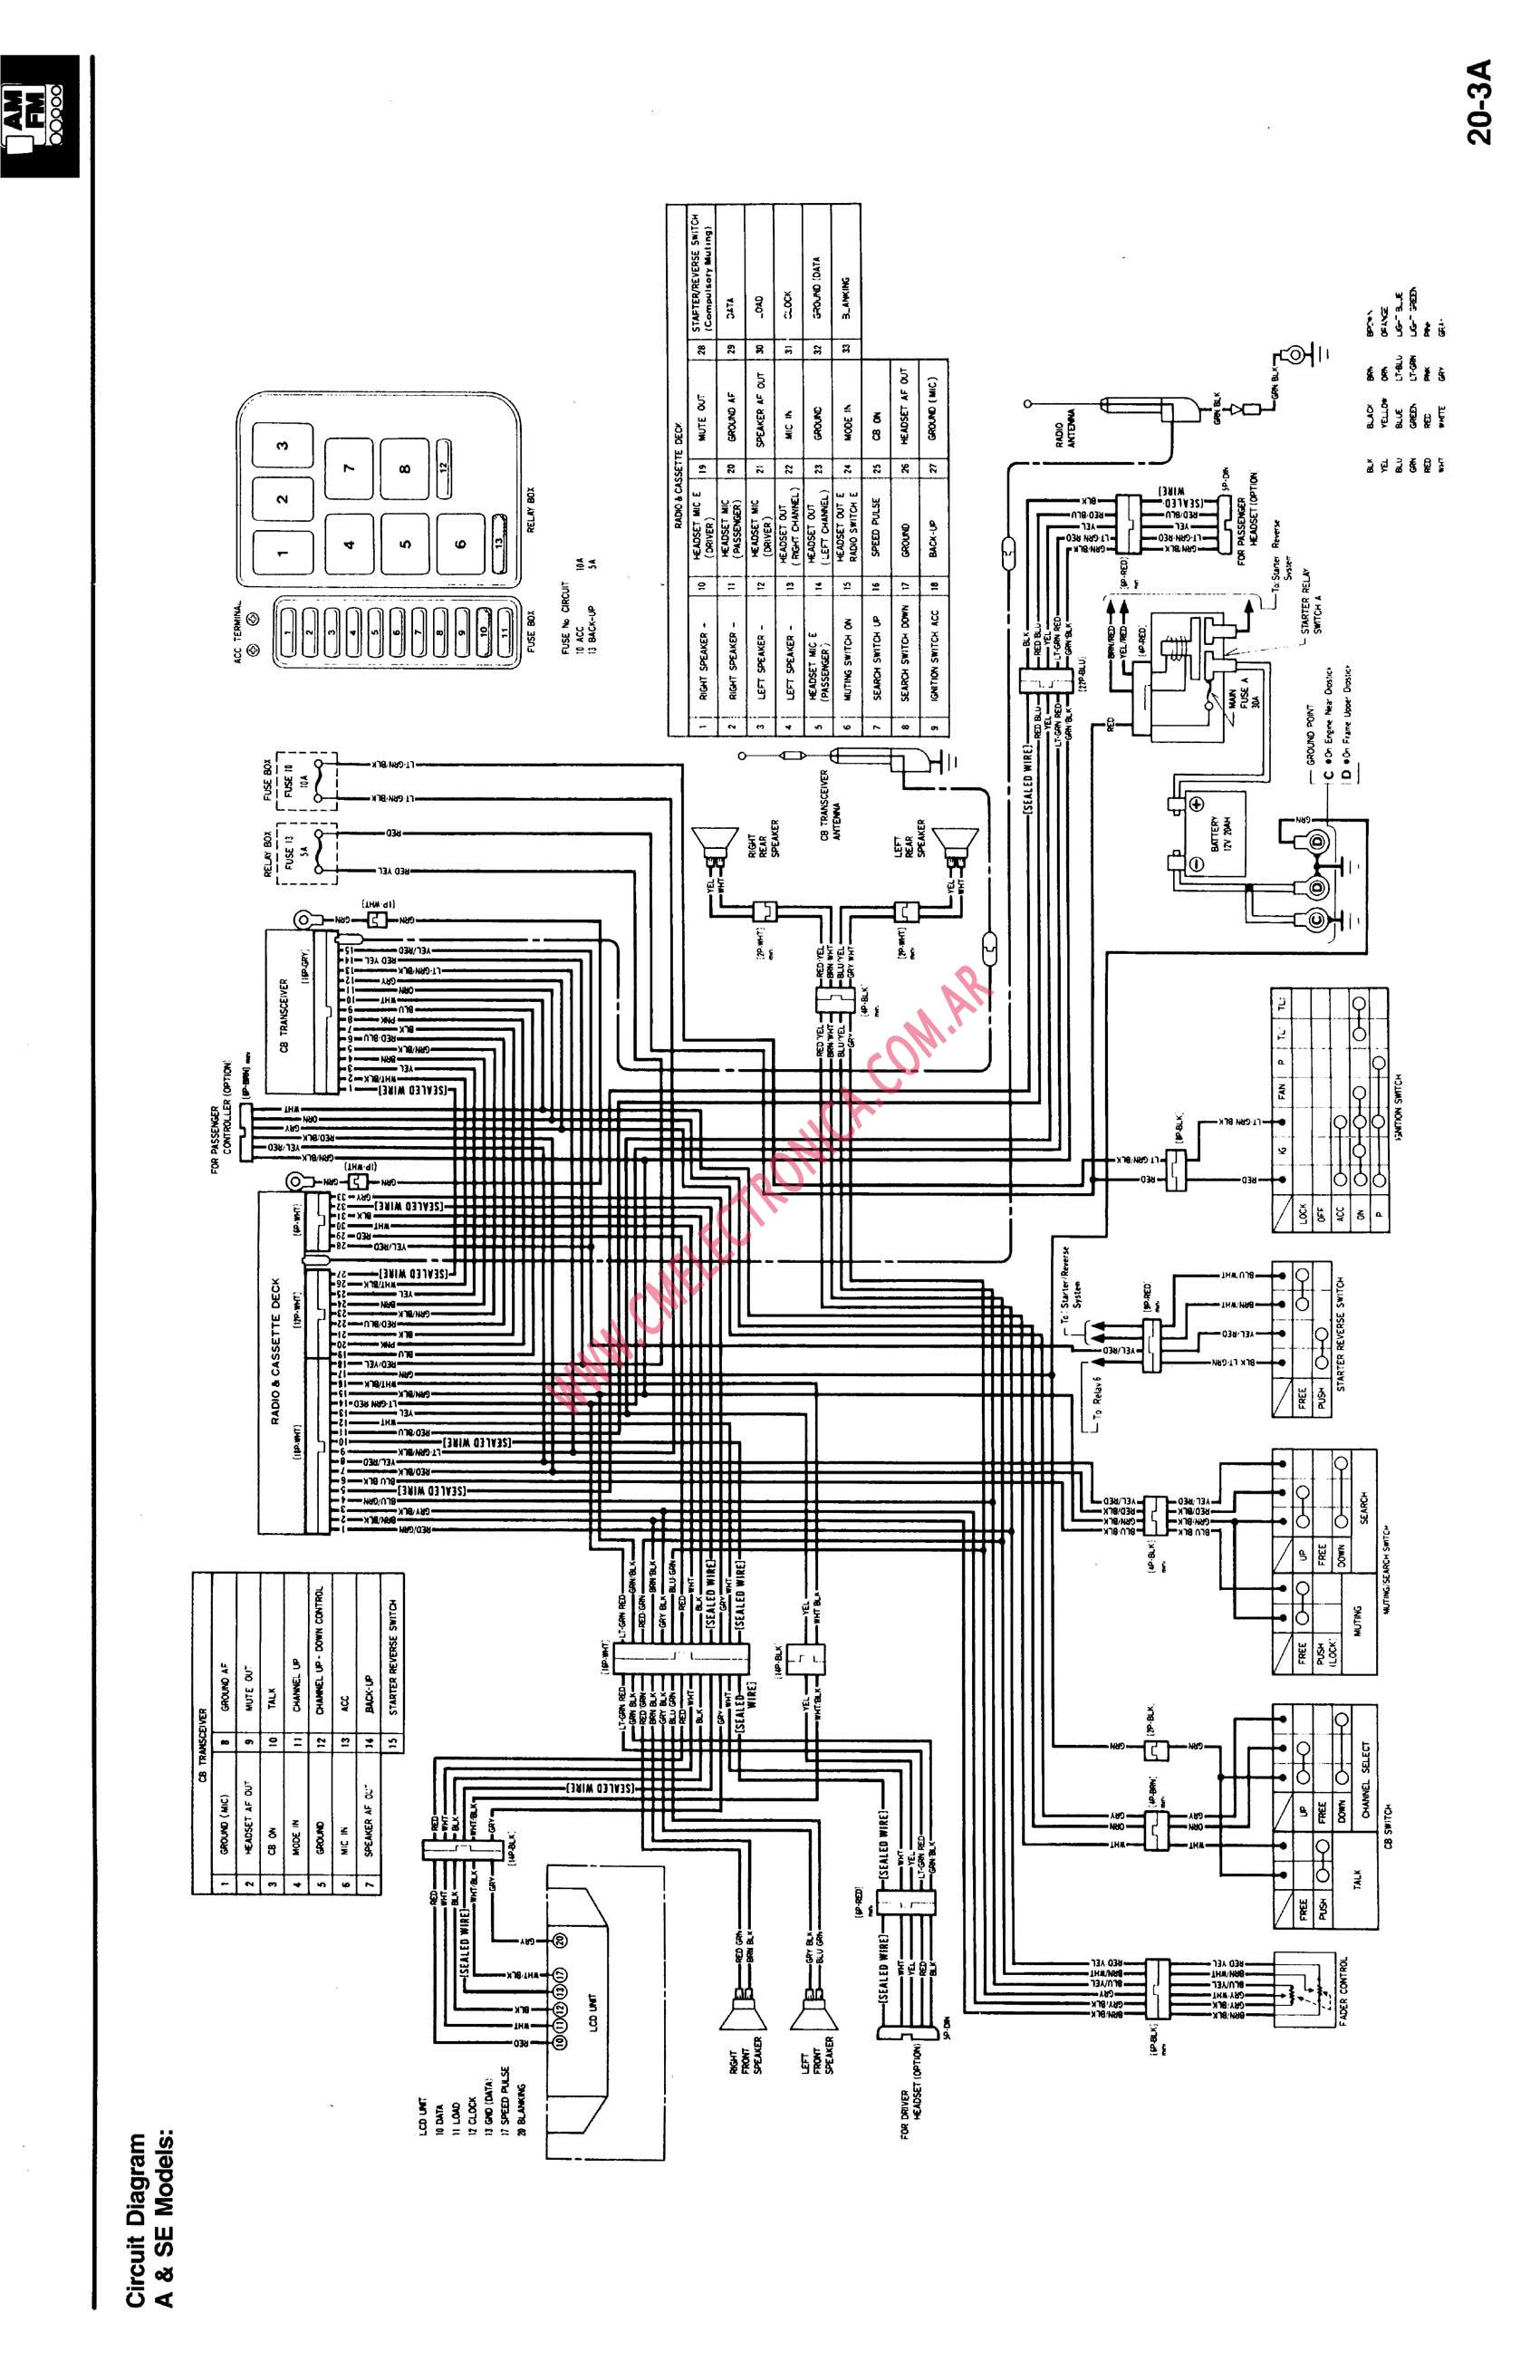 03 R1 Wiring Diagram 03 Free Engine Image For User Manual Download